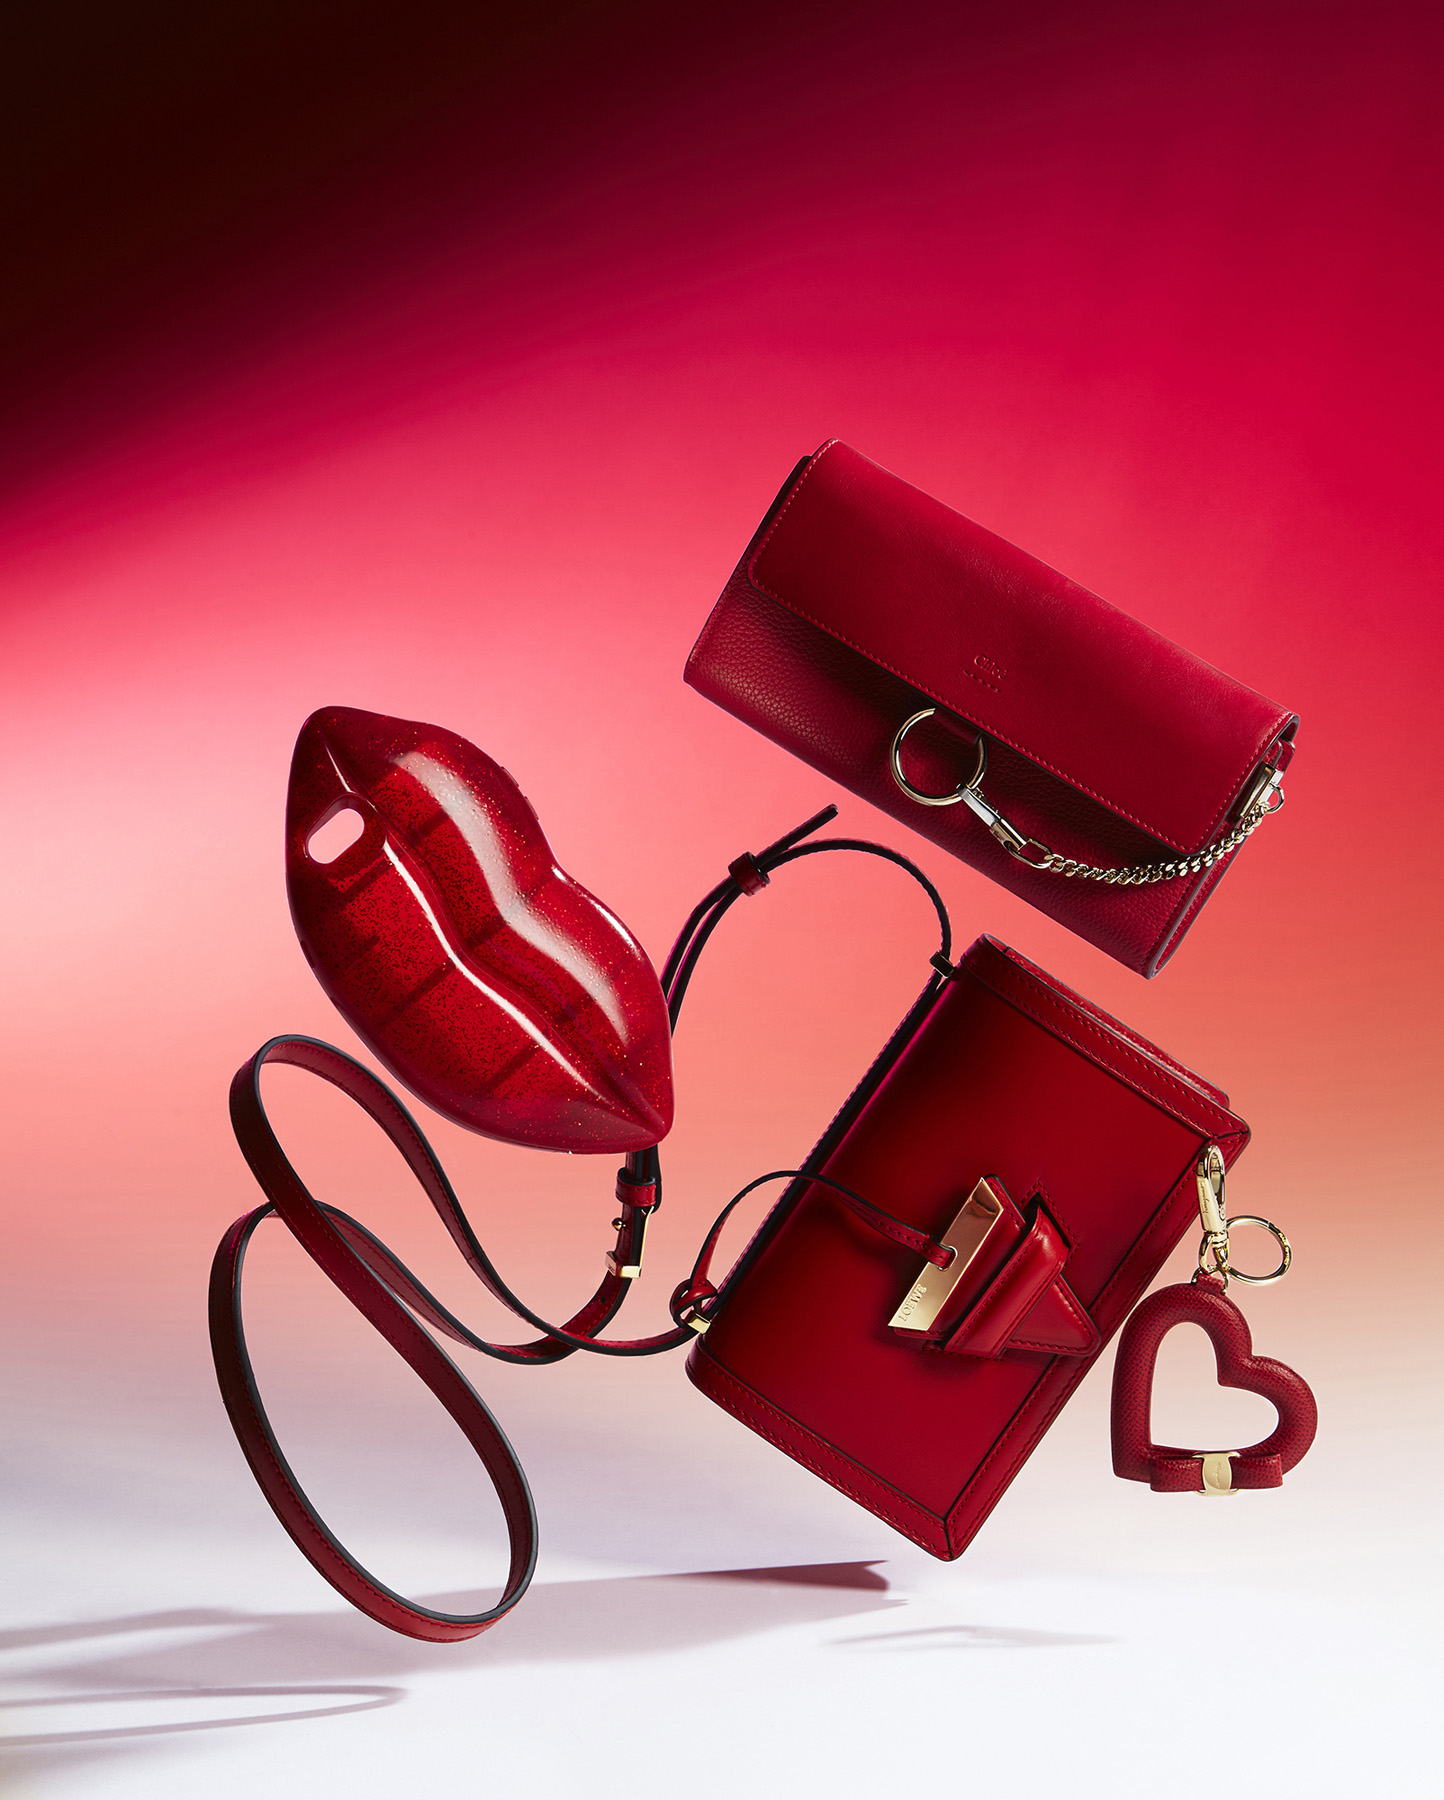 icon-artist-management-editorial-nu-valado-heathrow-magazine-red-accessories-003.jpg